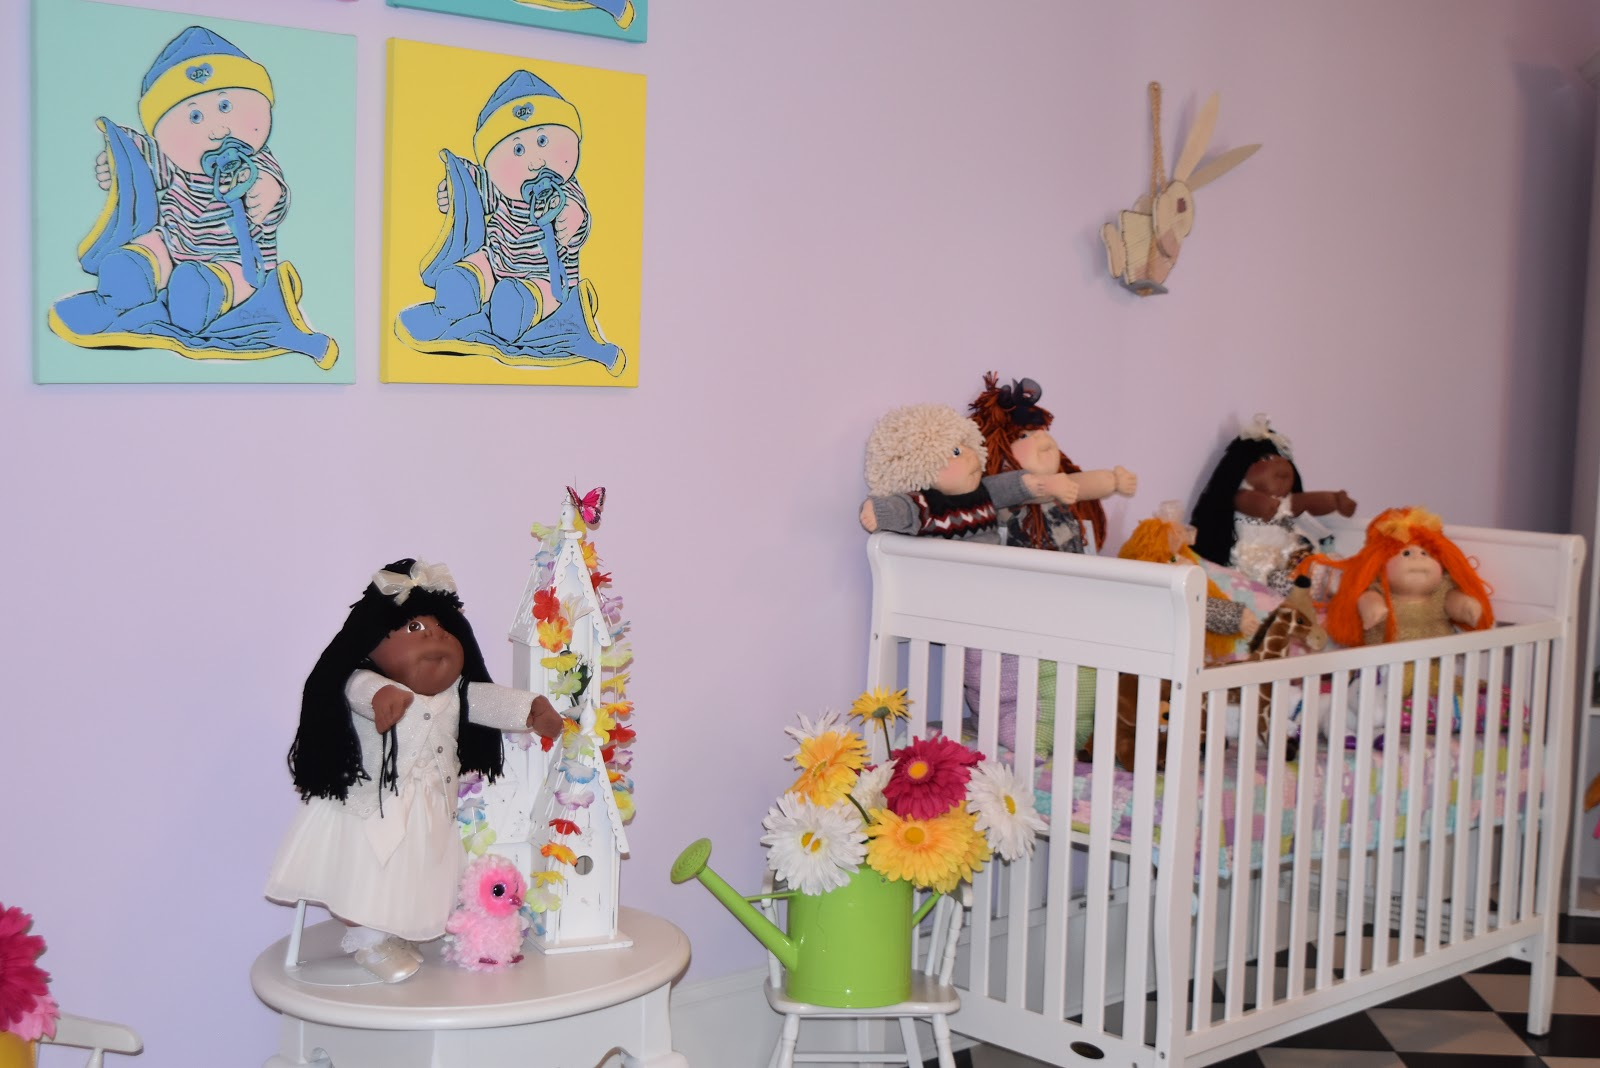 Our Trip to Babyland General Hospital: Birth Place of the Cabbage Patch Kid Dolls